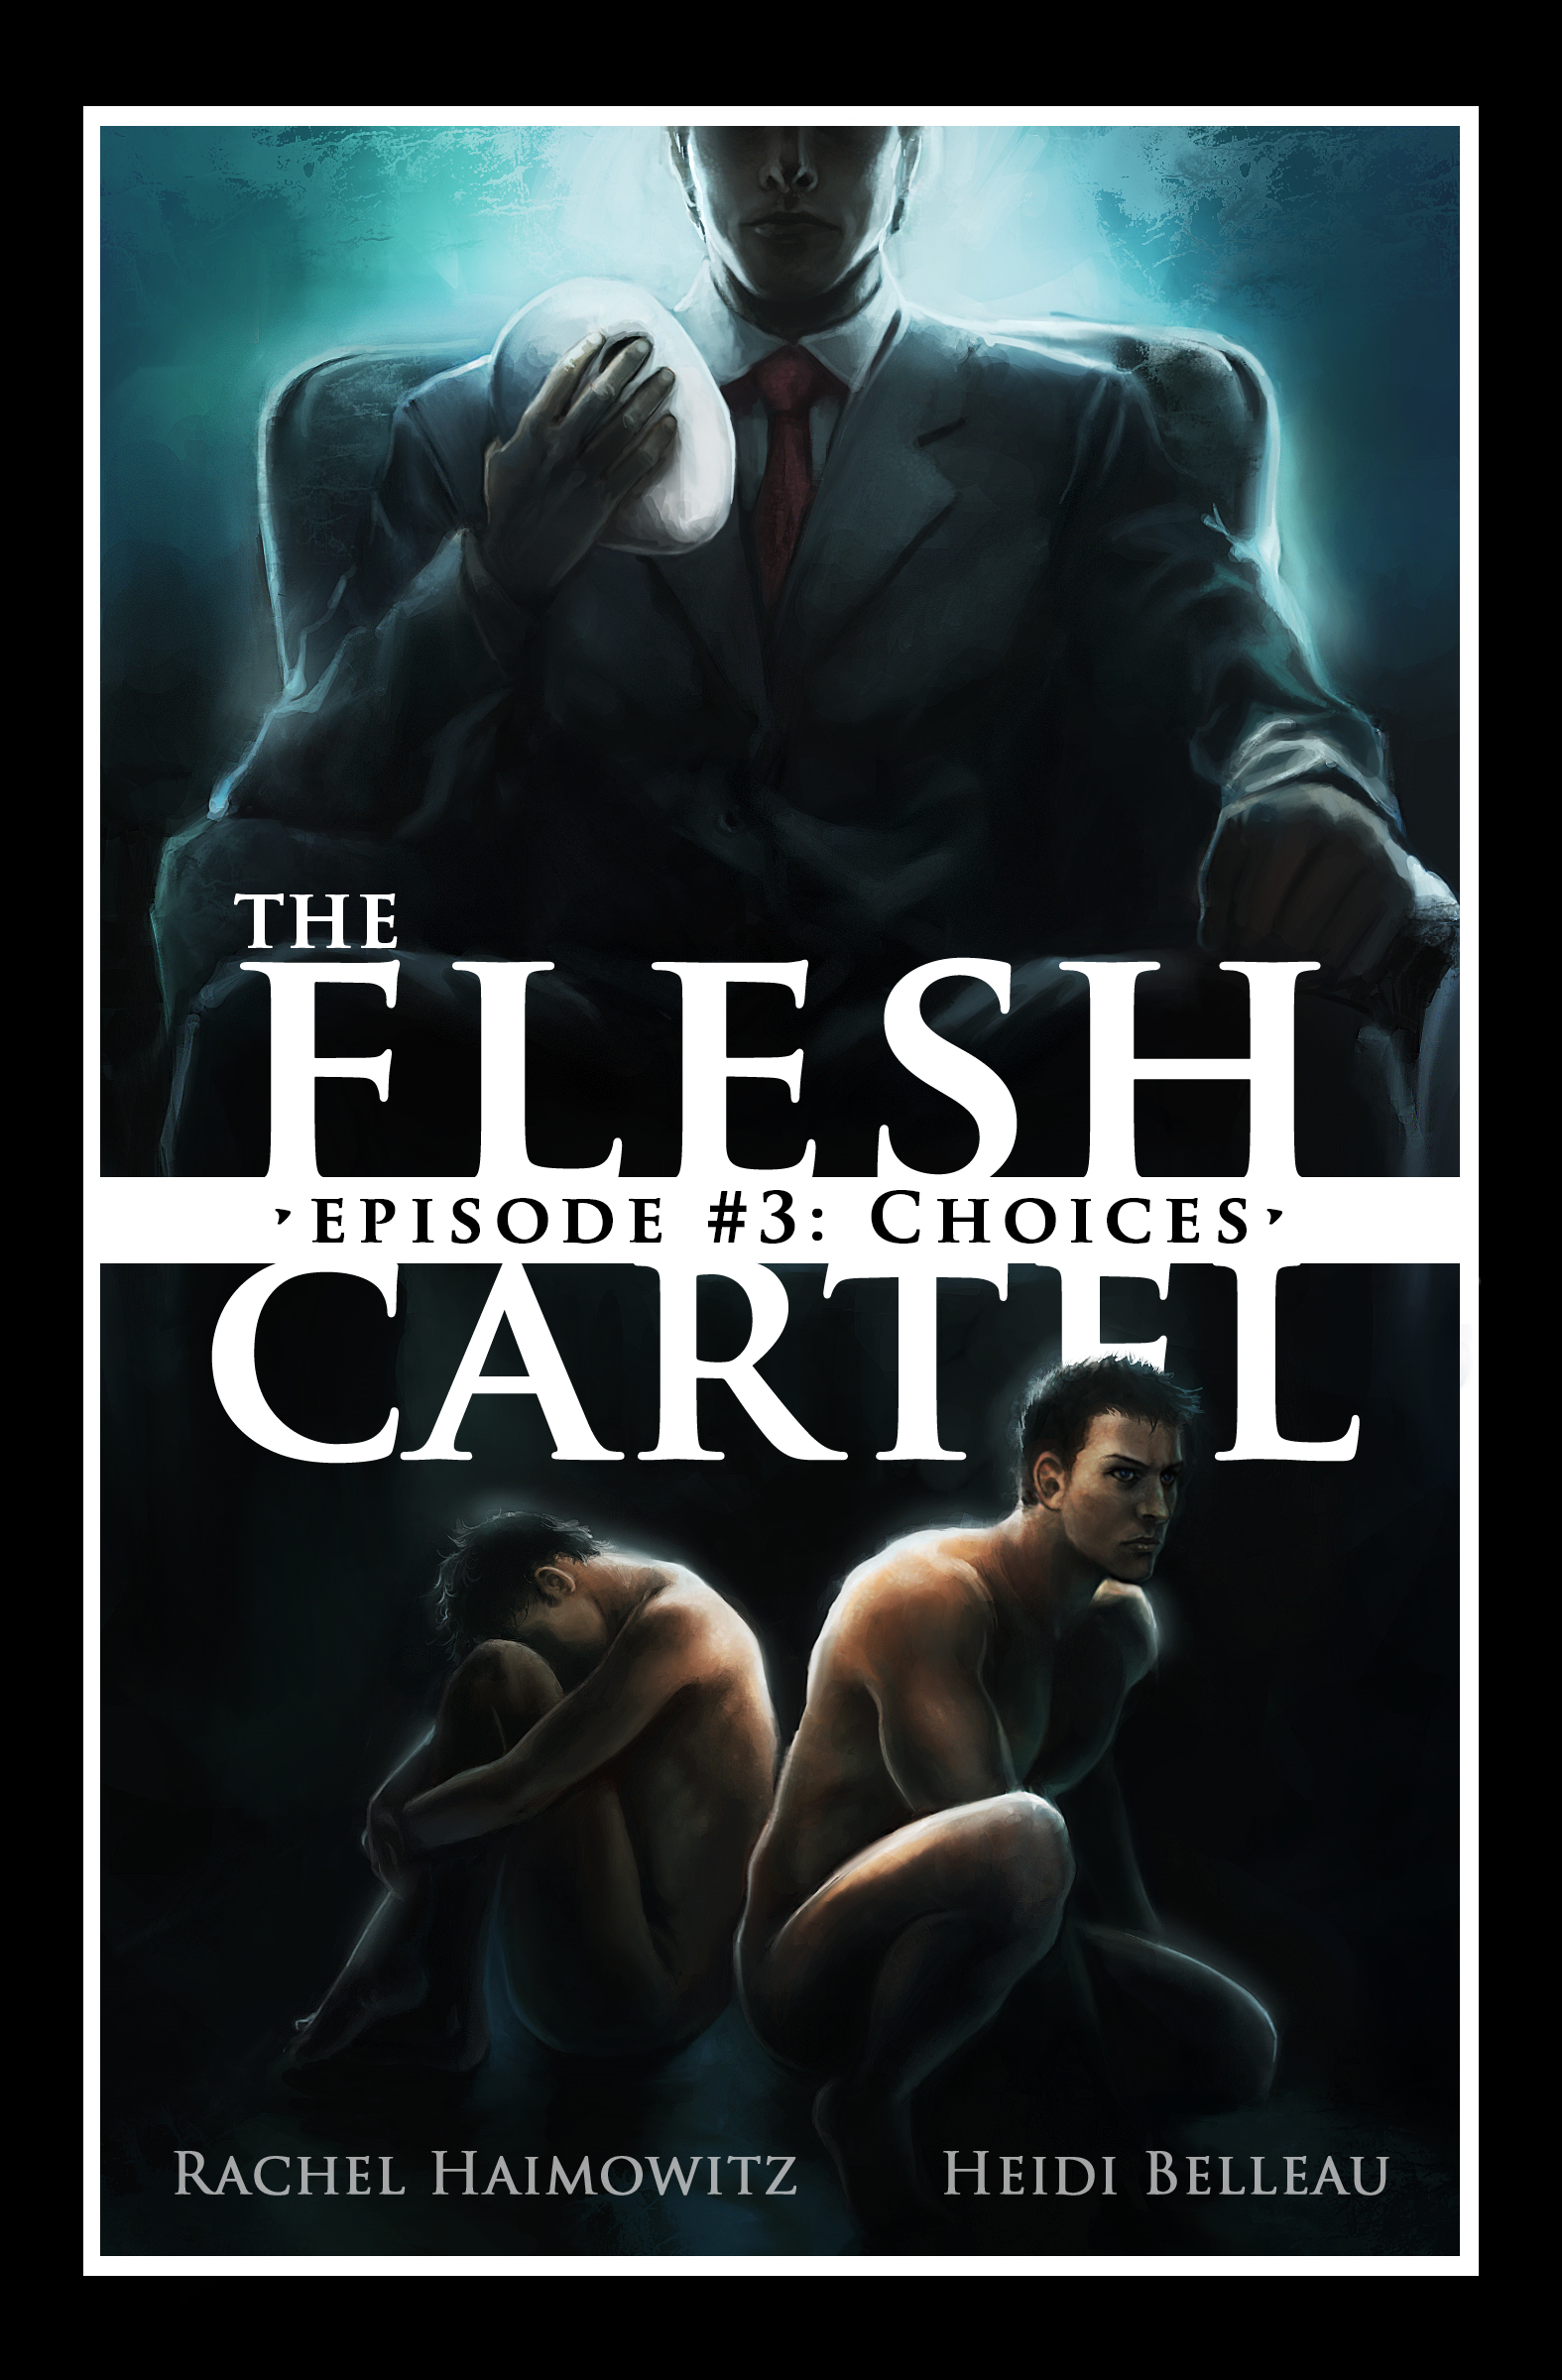 The Flesh Cartel #3: Choices